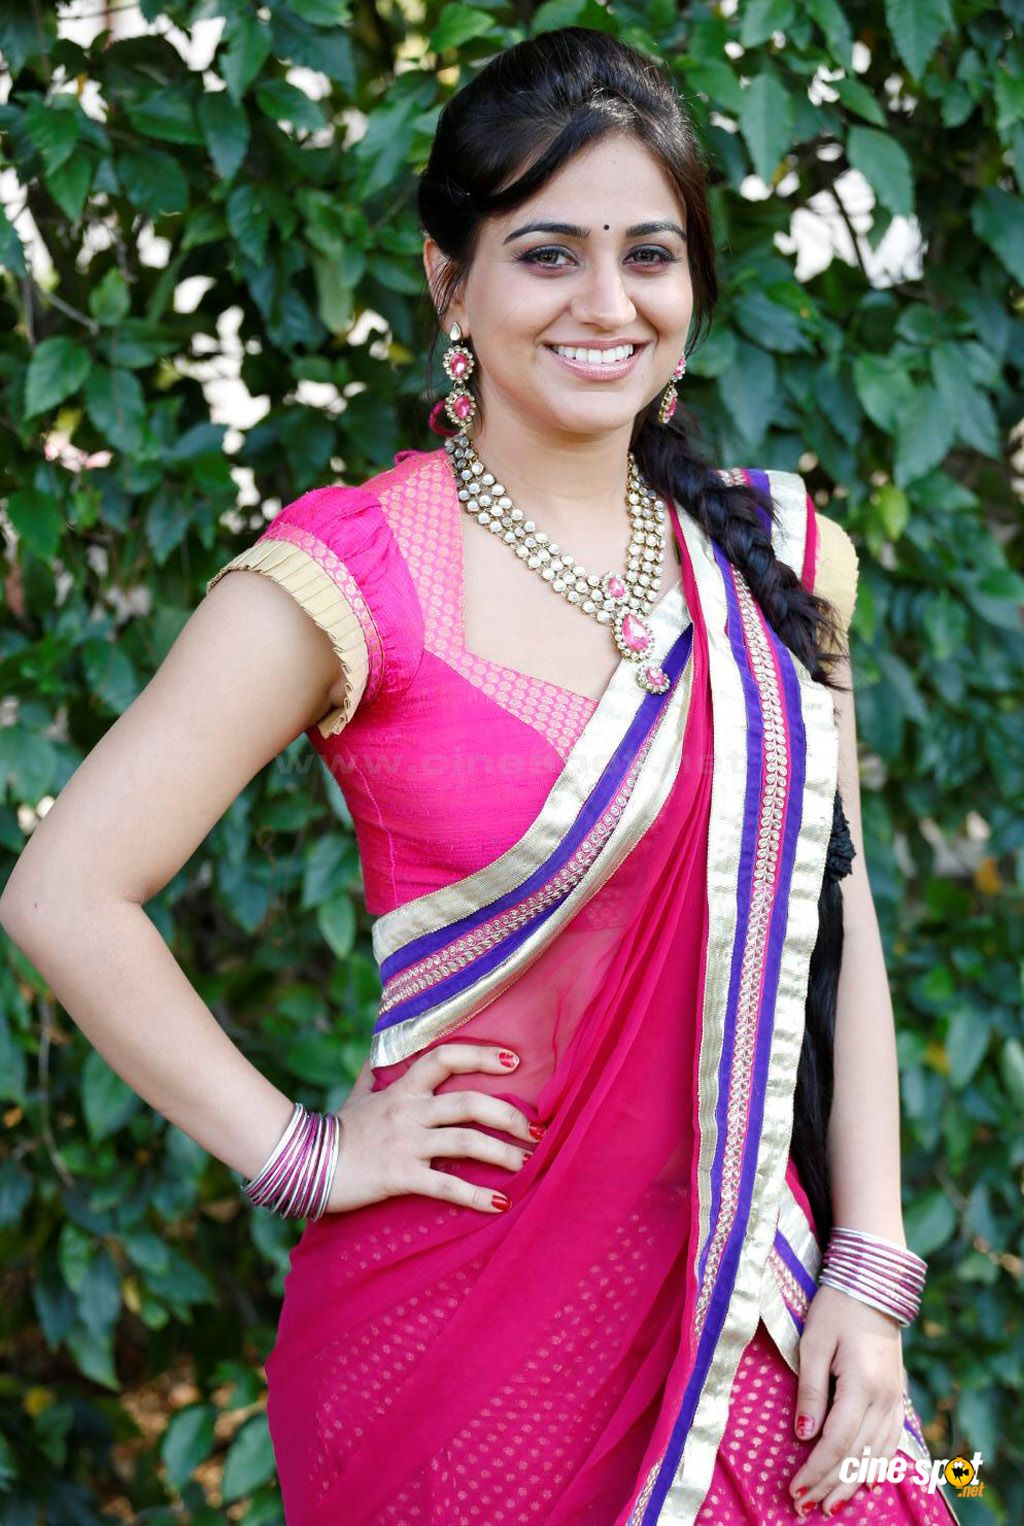 Aksha sidri hot navel and cleavage show in saree from ...